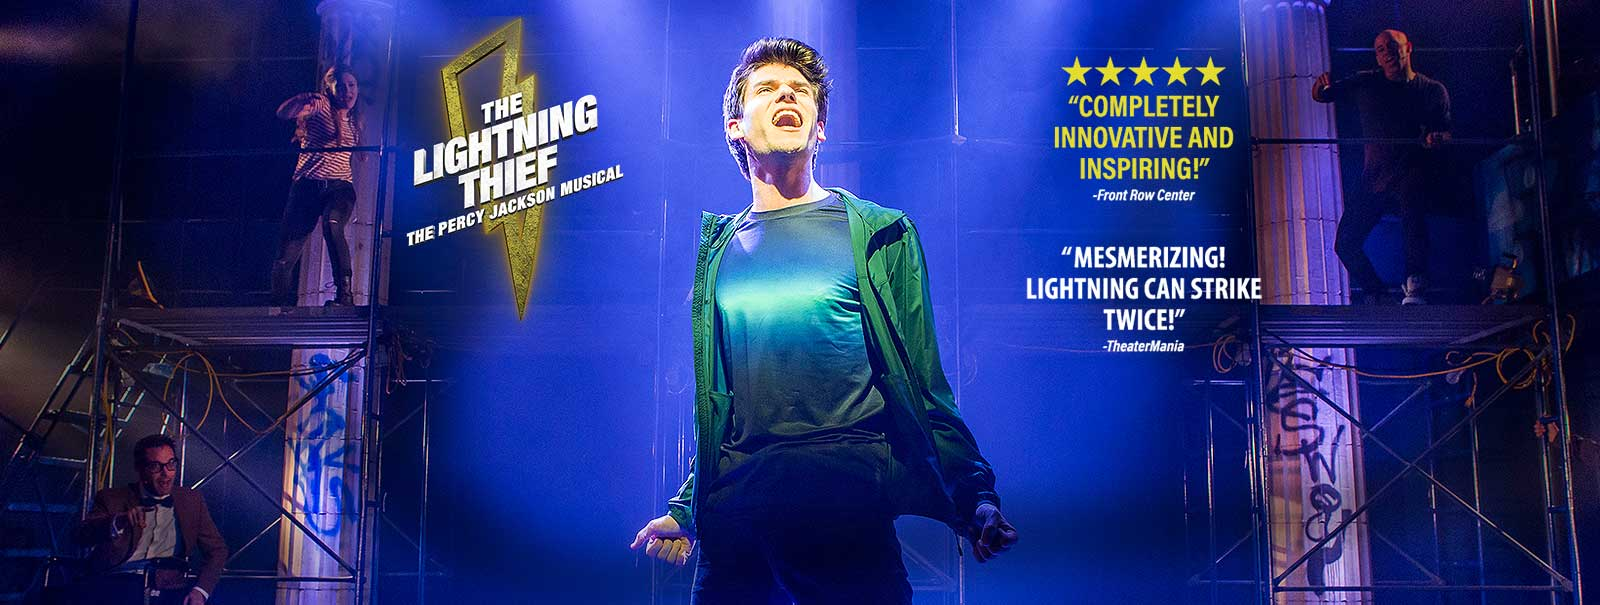 More Info - The Lightning Thief: The Percy Jackson Musical